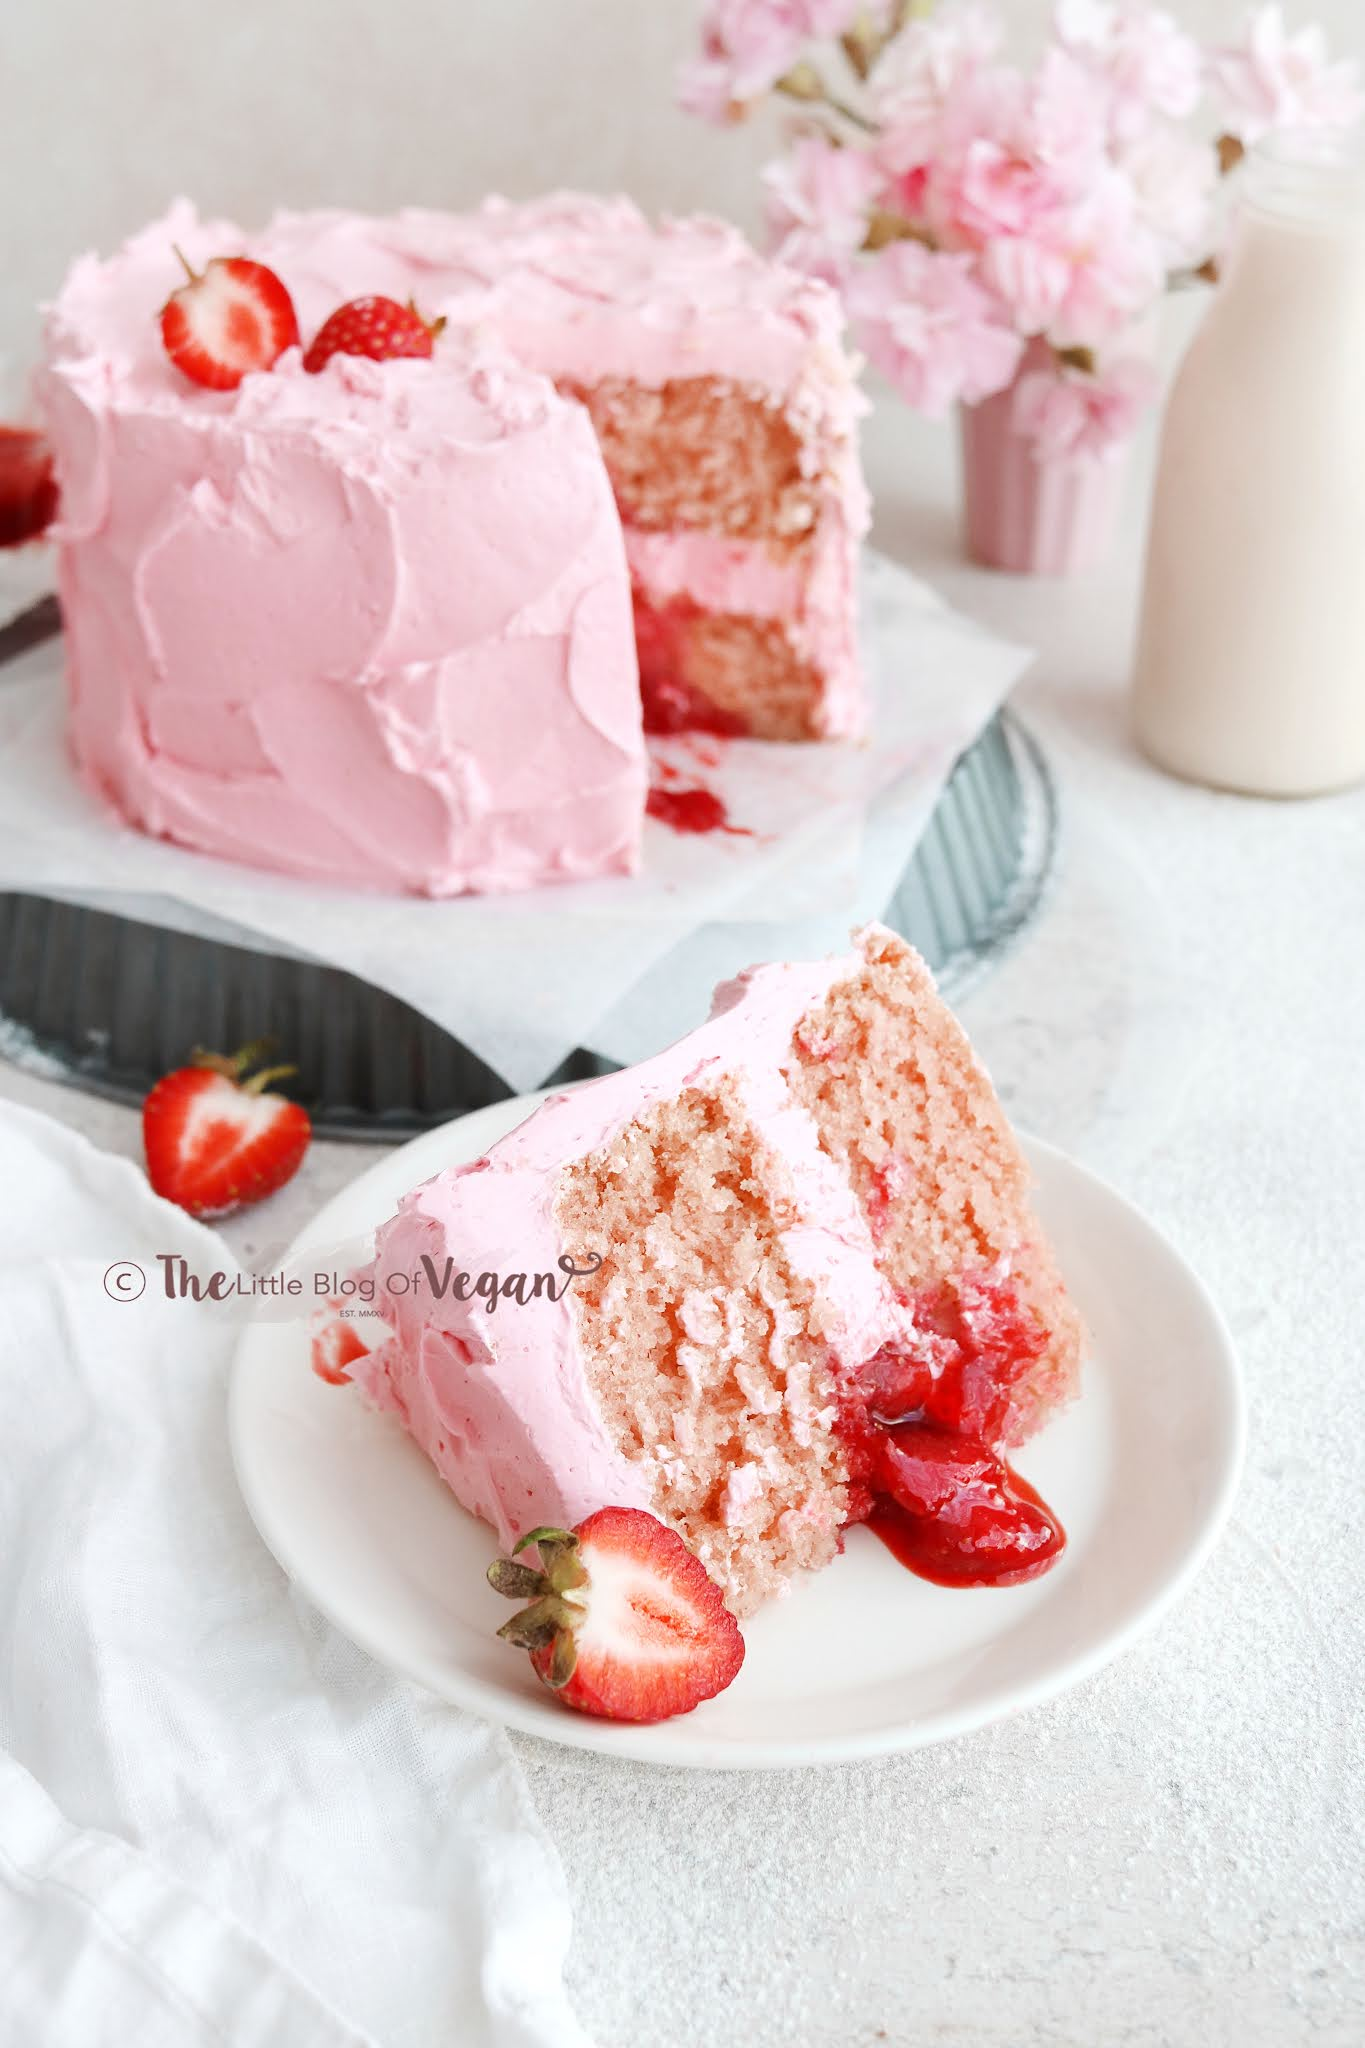 Vegan cake slice with berry compote